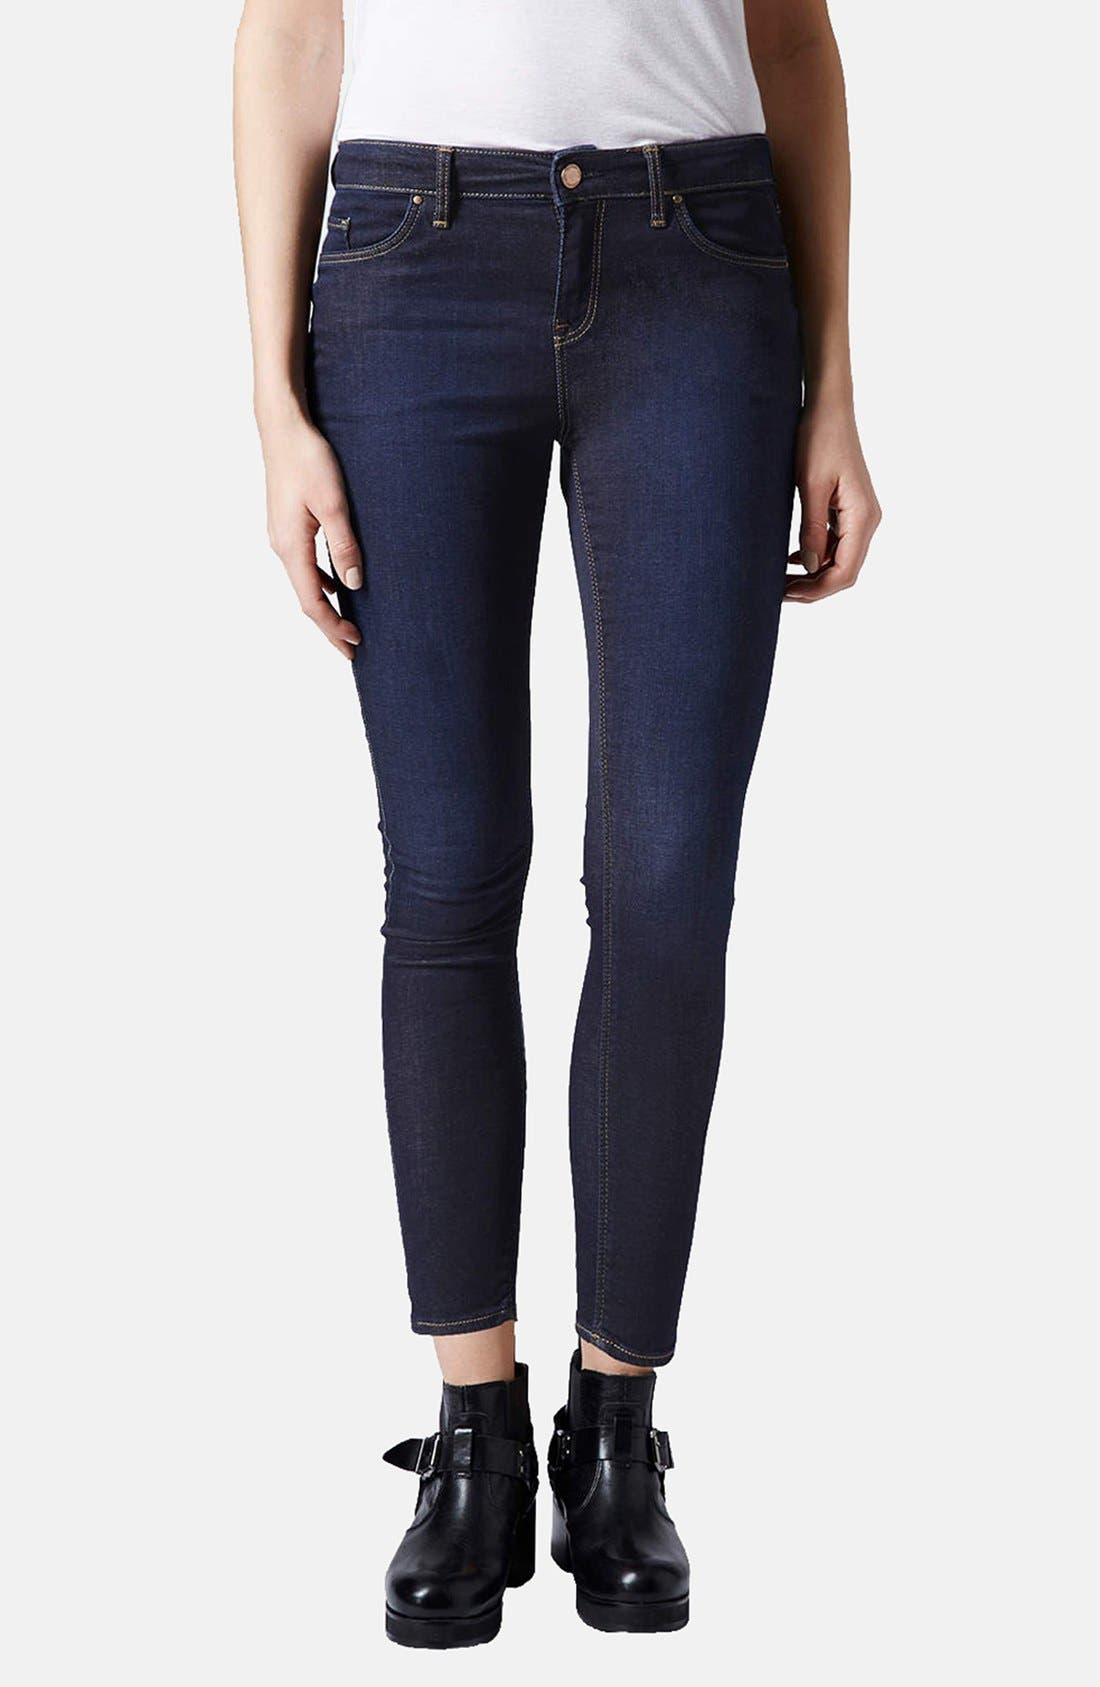 Alternate Image 1 Selected - Topshop Moto 'Leigh' Skinny Jeans (Mid Stone) (Petite)